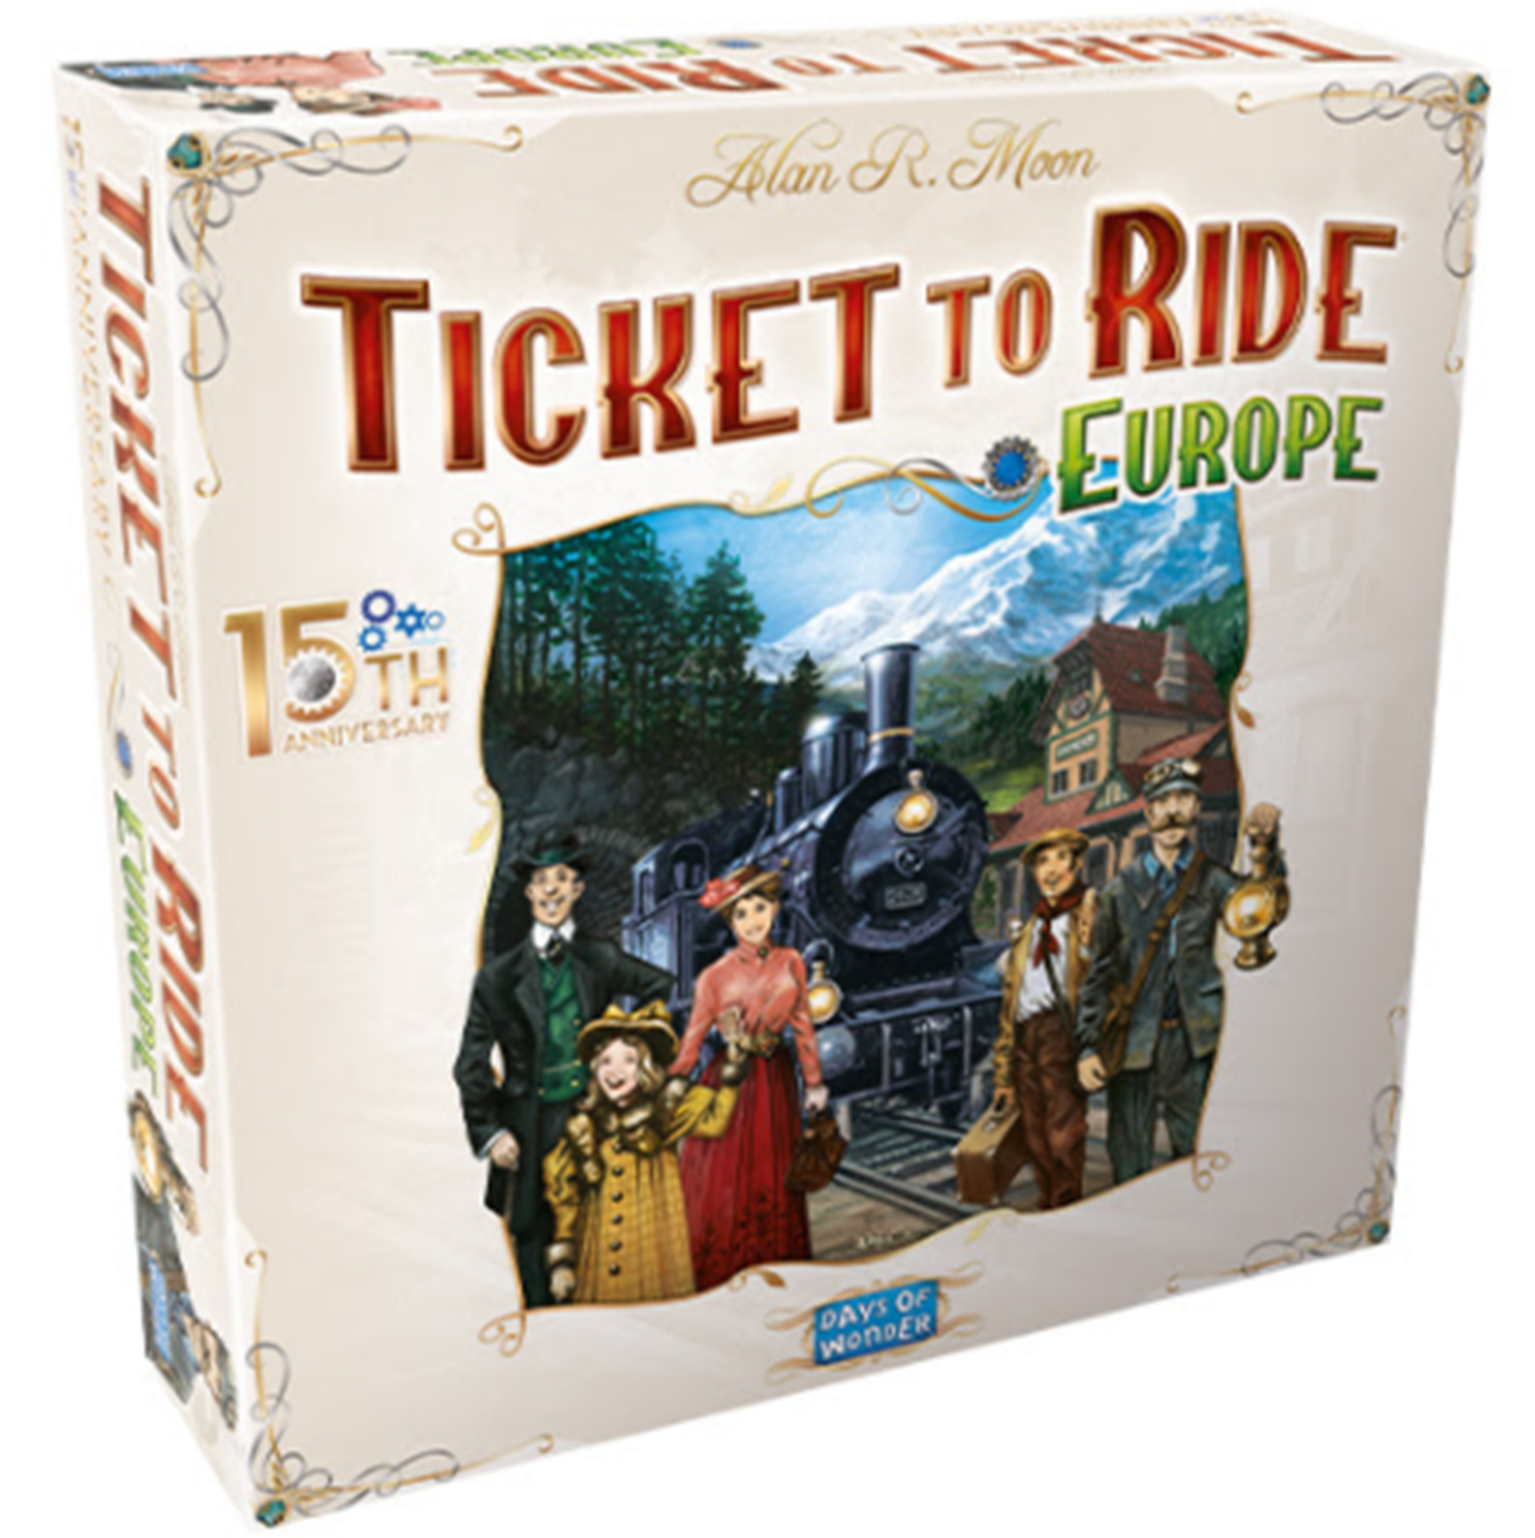 Ticket to Ride Europe - 15th Anniversary Collectors Edition